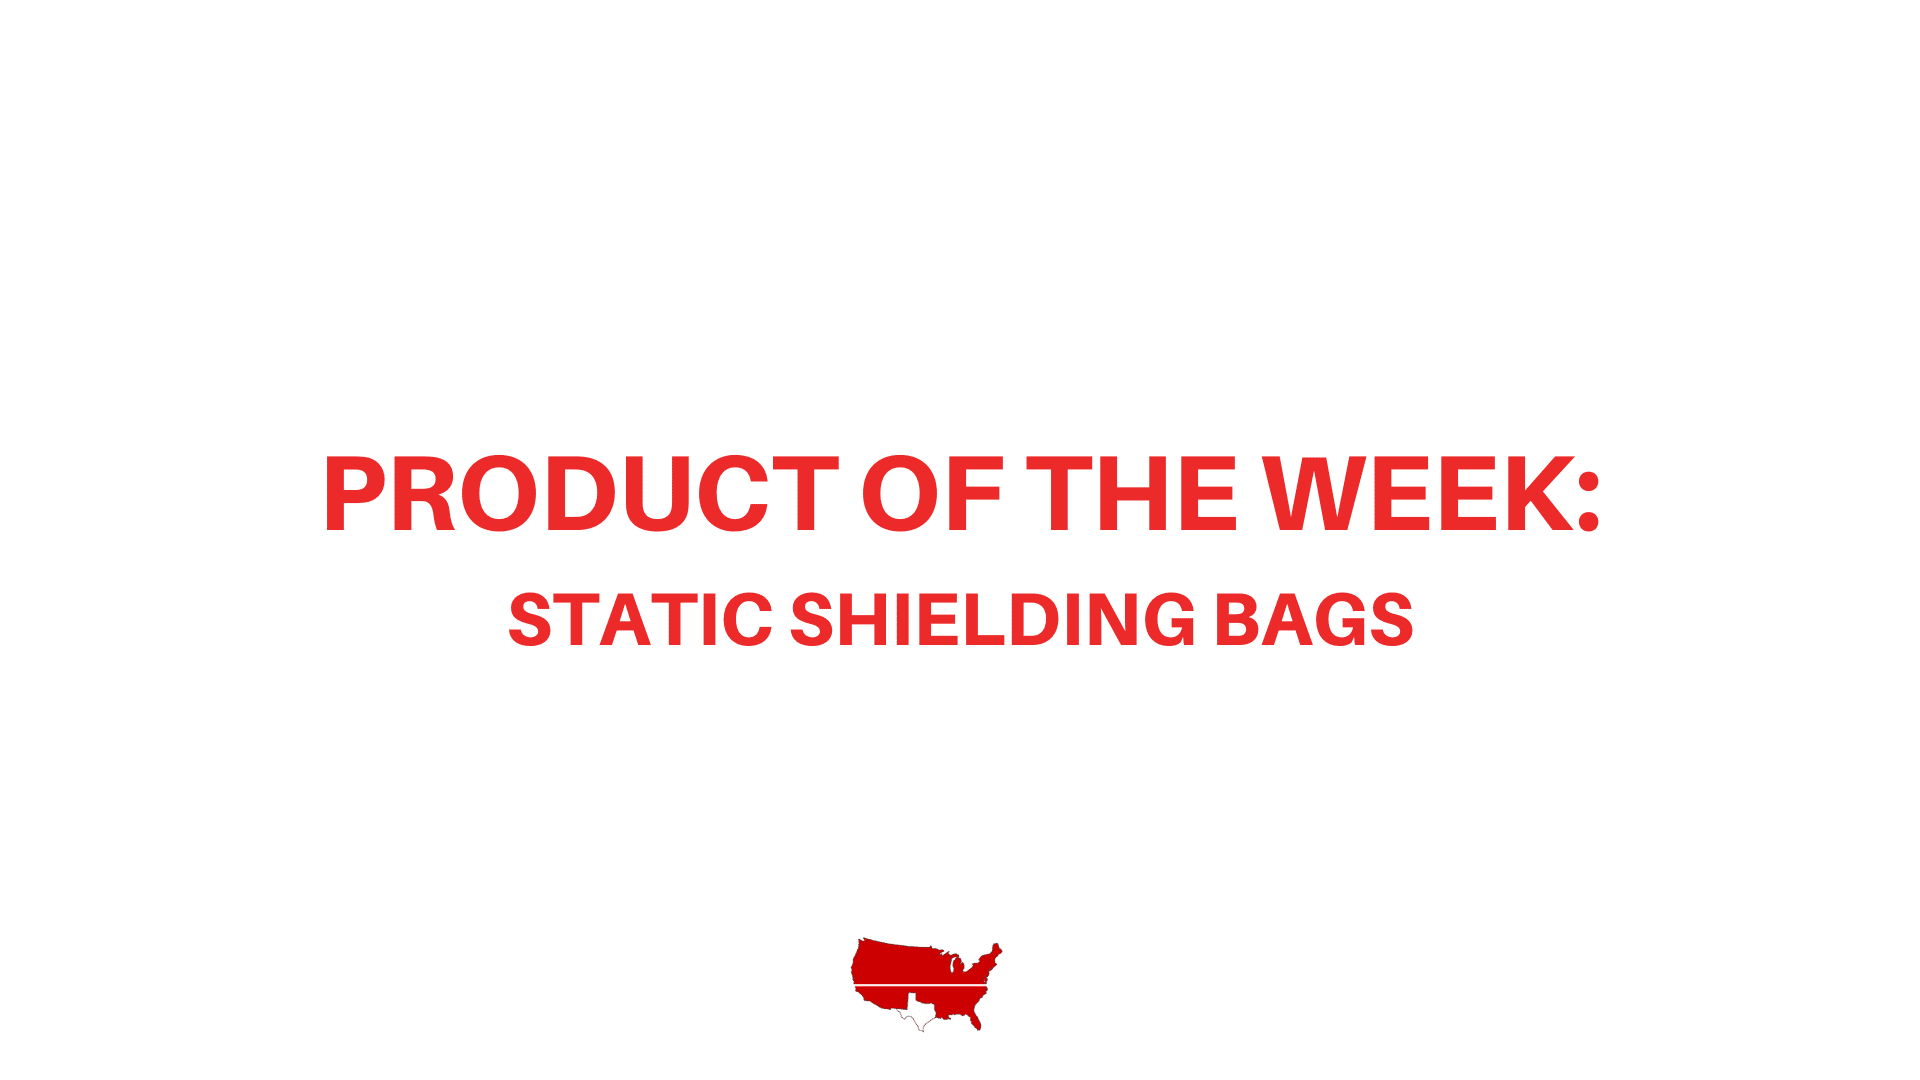 Product of The Week- Static Shielding Bags